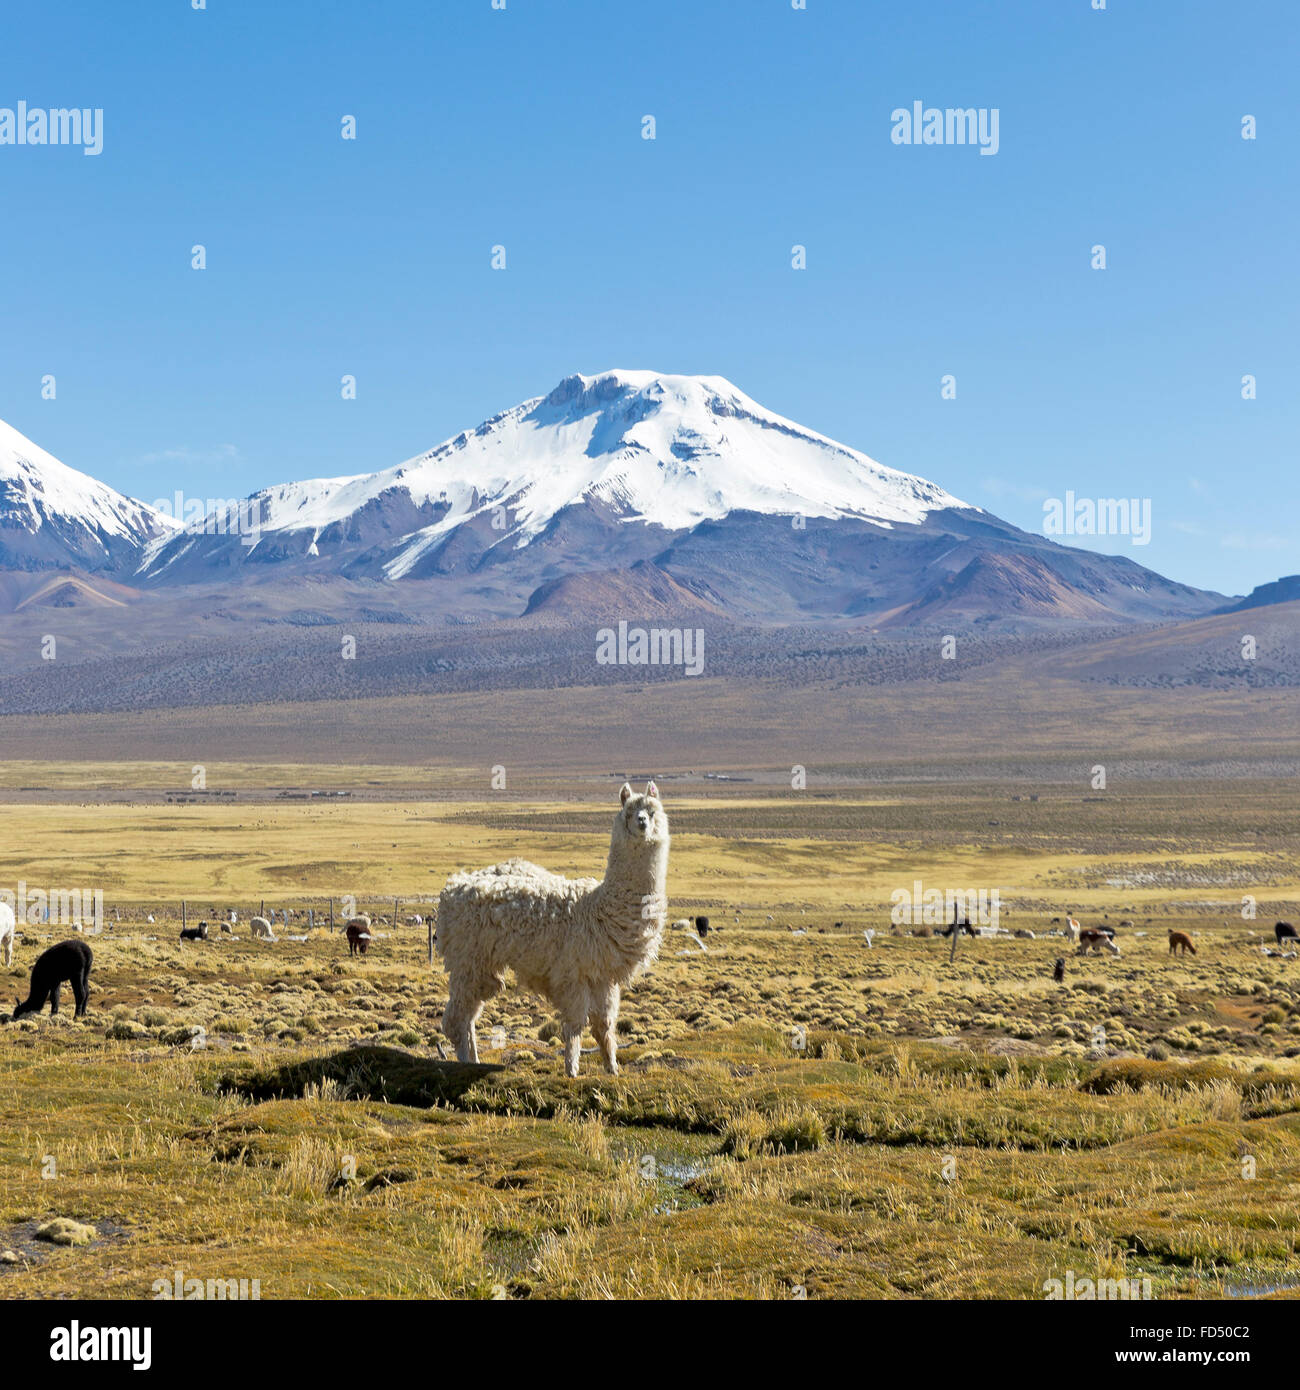 landscape of the Andes Mountains, with snow-covered volcano in the background, and a group of llamas grazing in - Stock Image